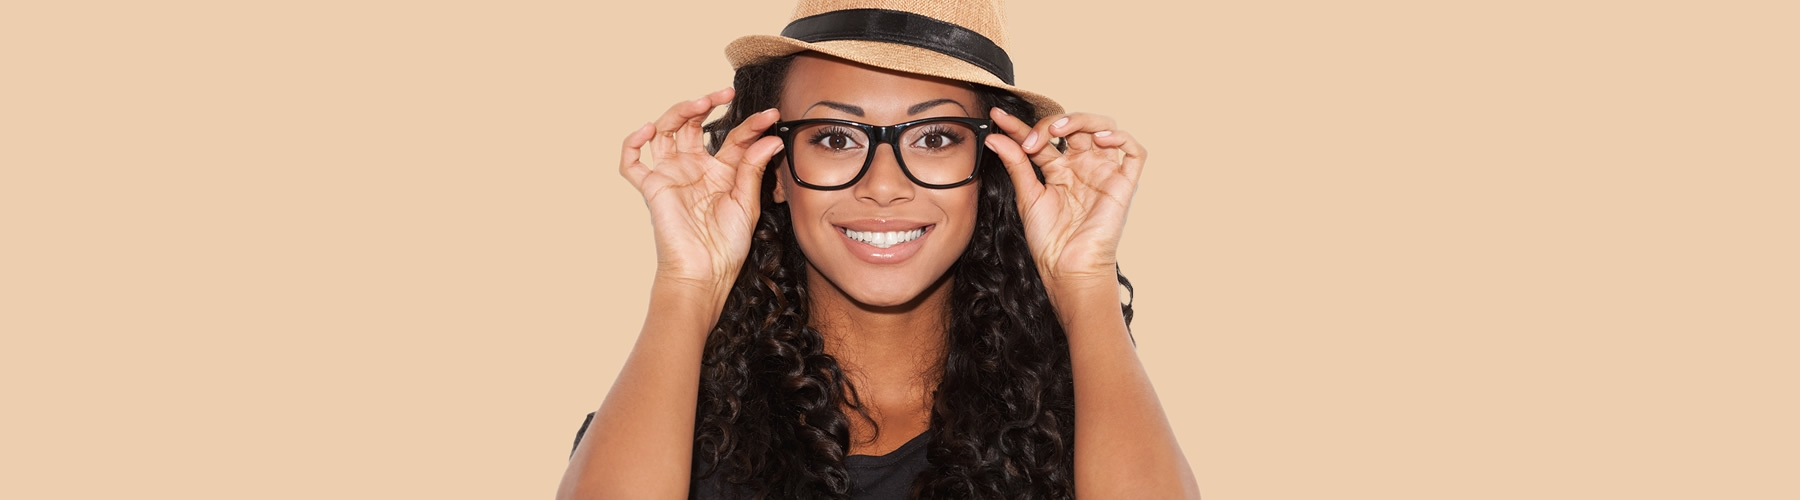 We specialize in HEALTHY SMILES!